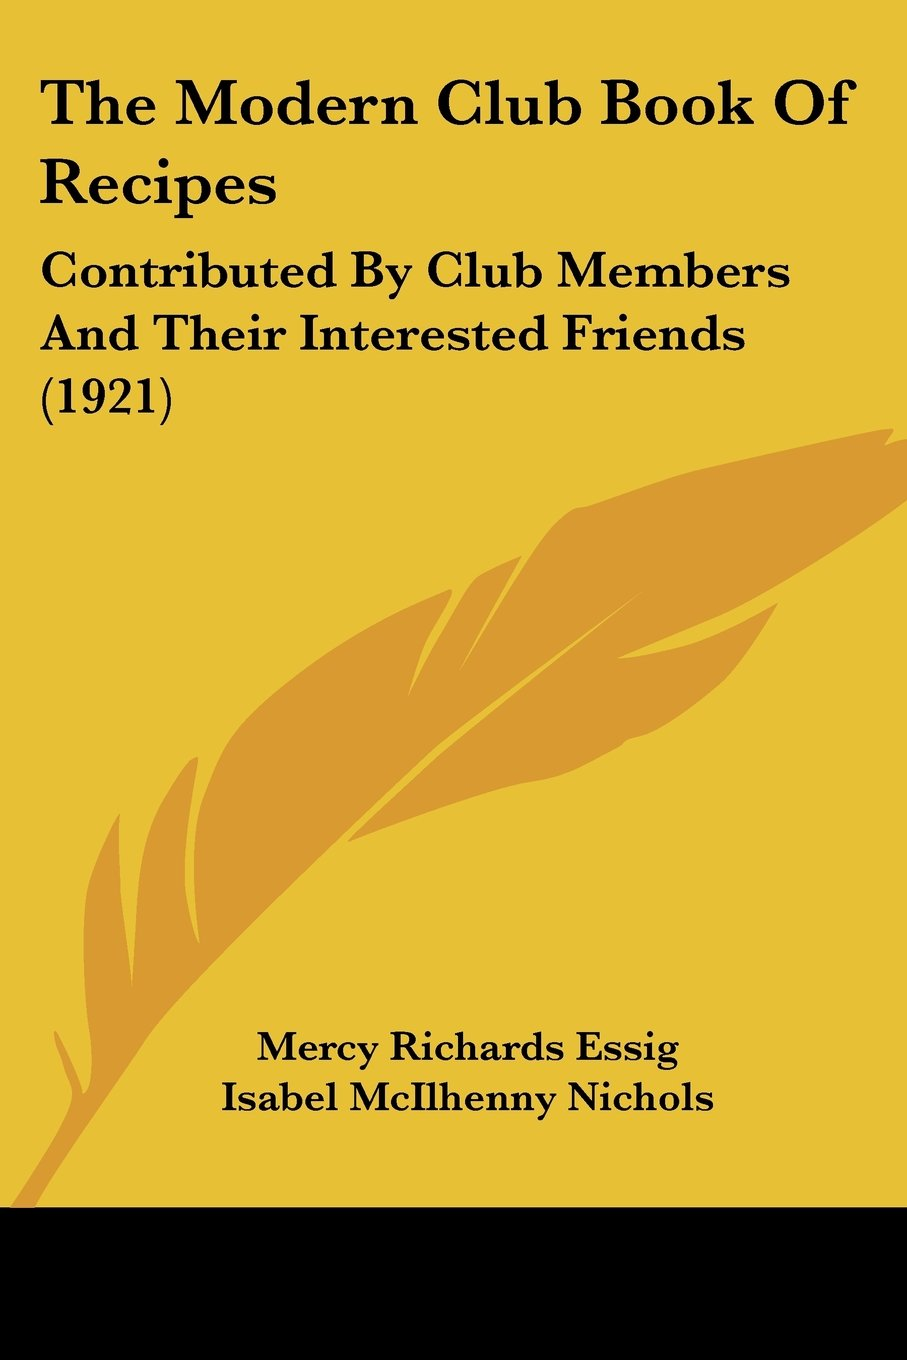 The Modern Club Book Of Recipes: Contributed By Club Members And Their Interested Friends (1921) PDF